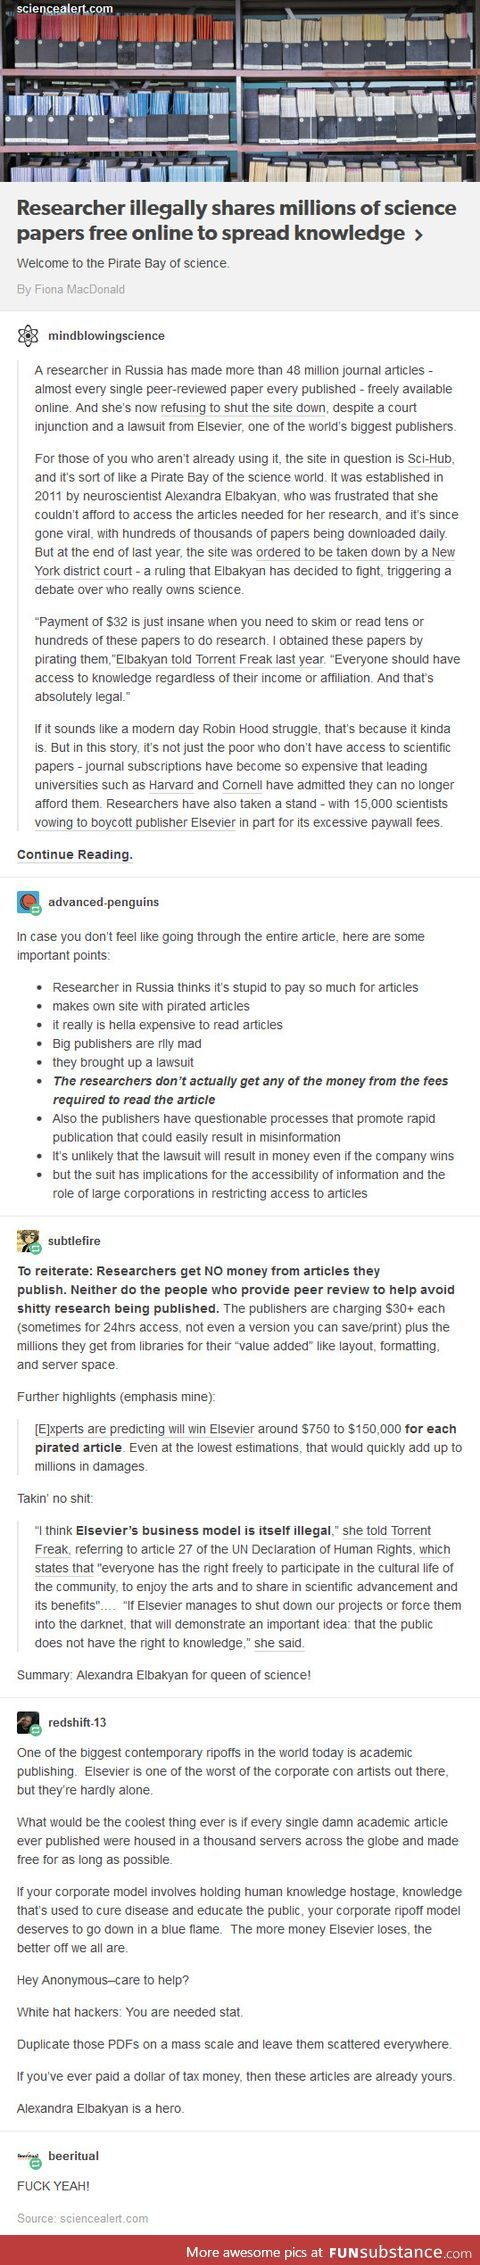 This should be freely accessible information! How else are we supposed to advance properly? Scientific discoveries and advances are more important than big companies pay checks